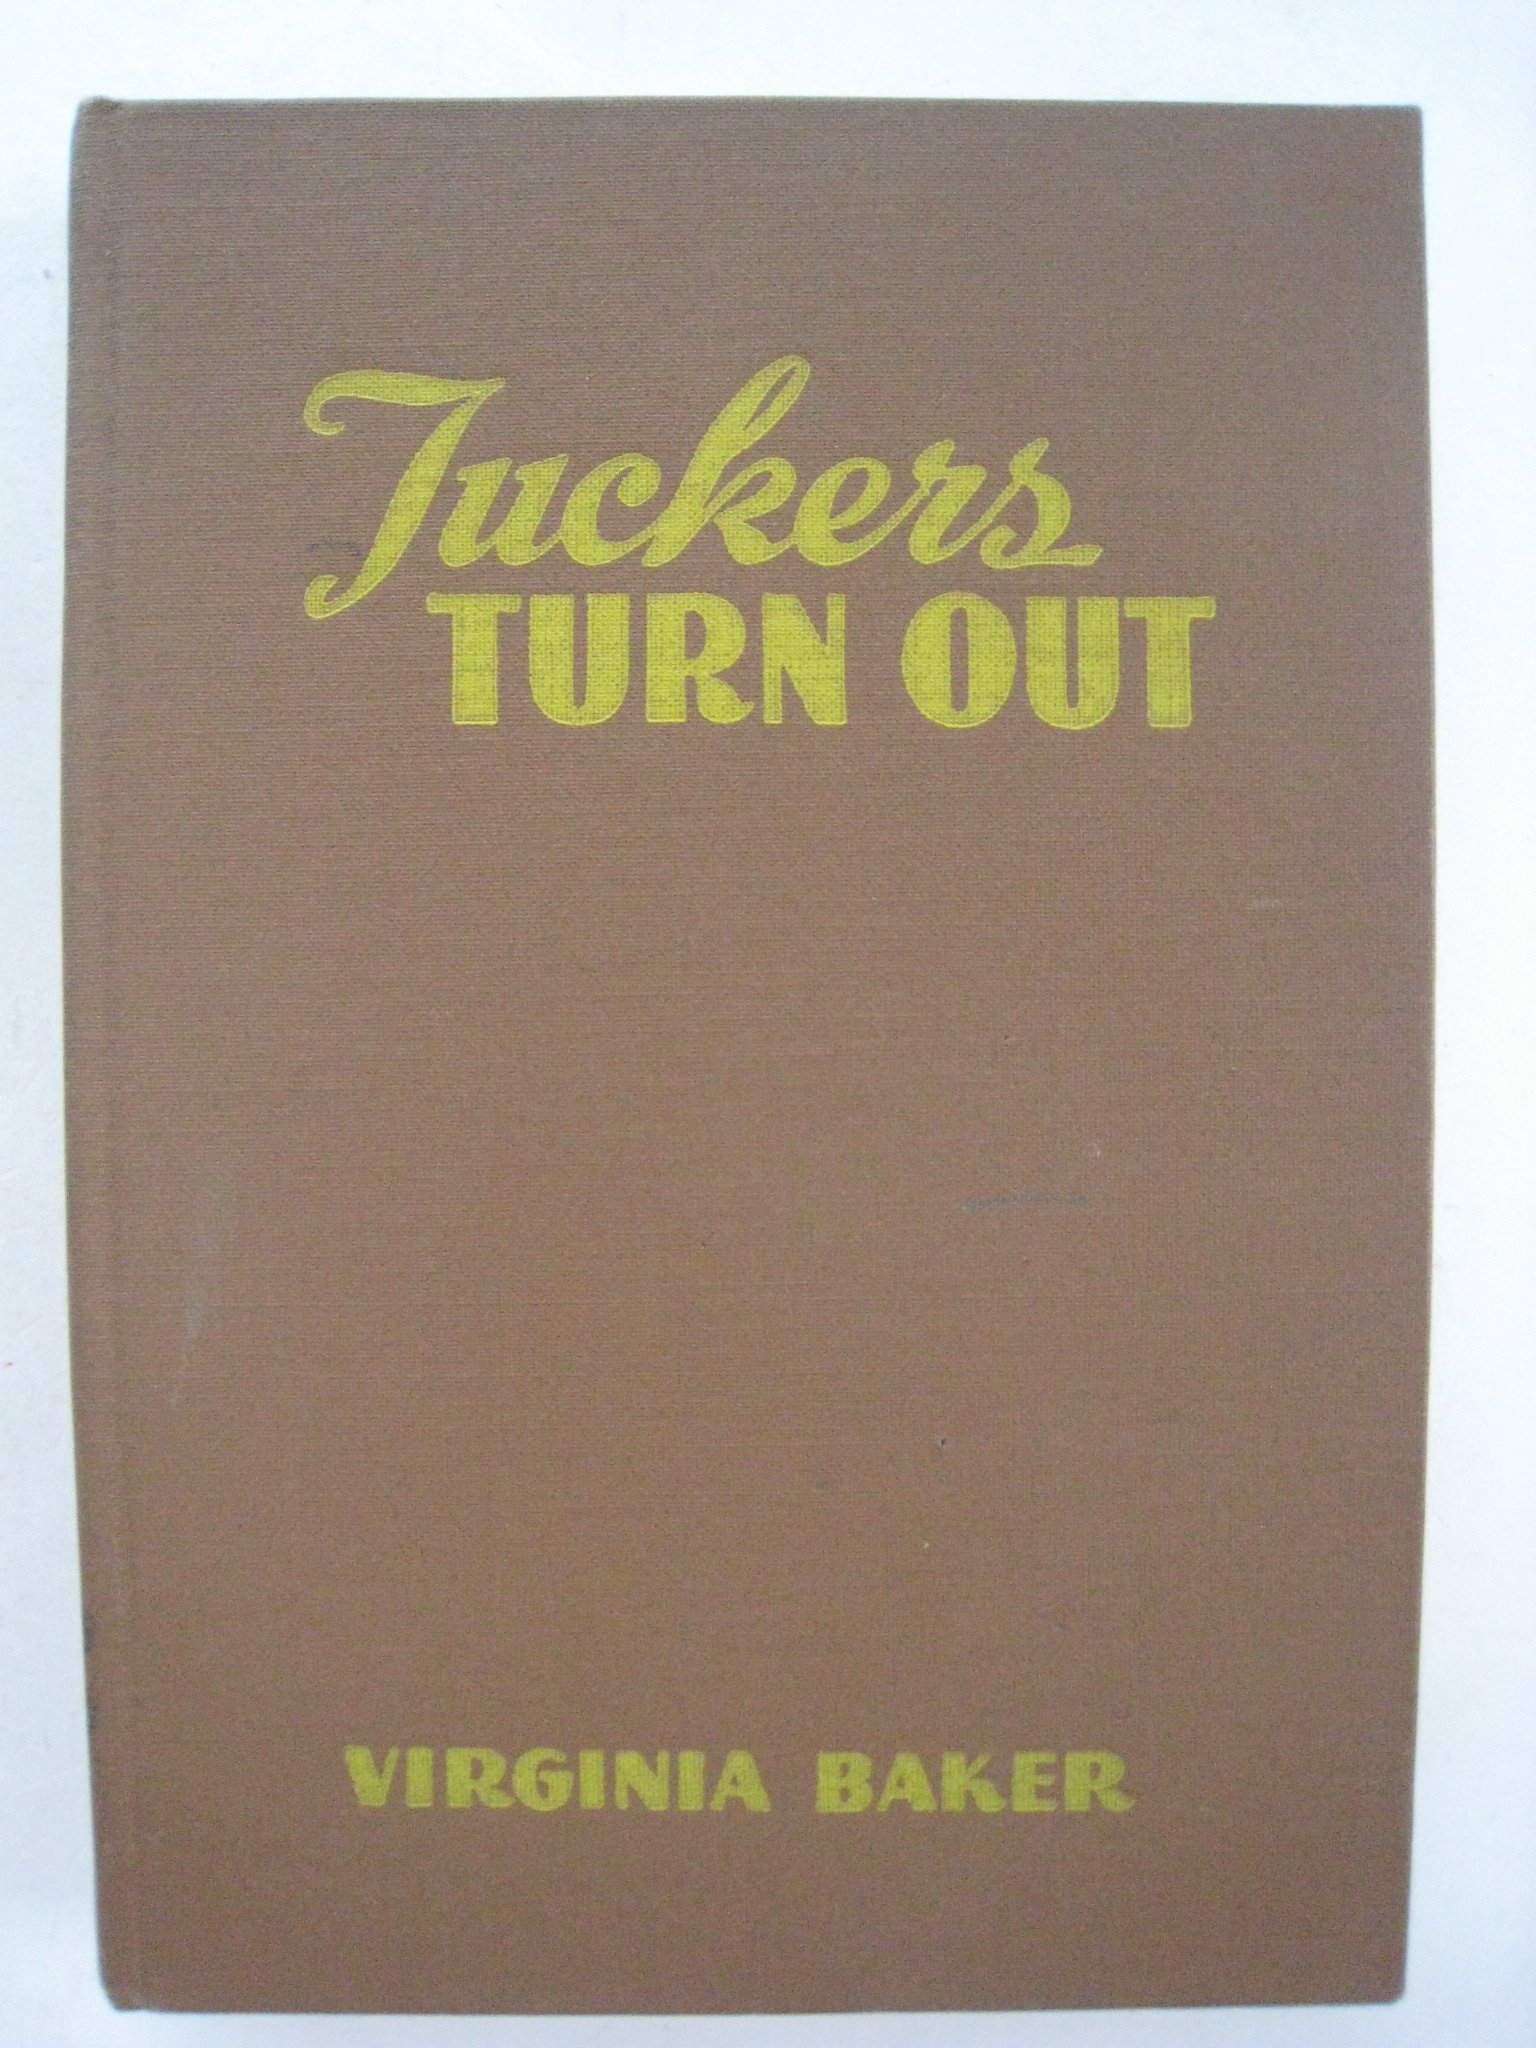 Tuckers turn out: Virginia Baker: Amazon com: Books